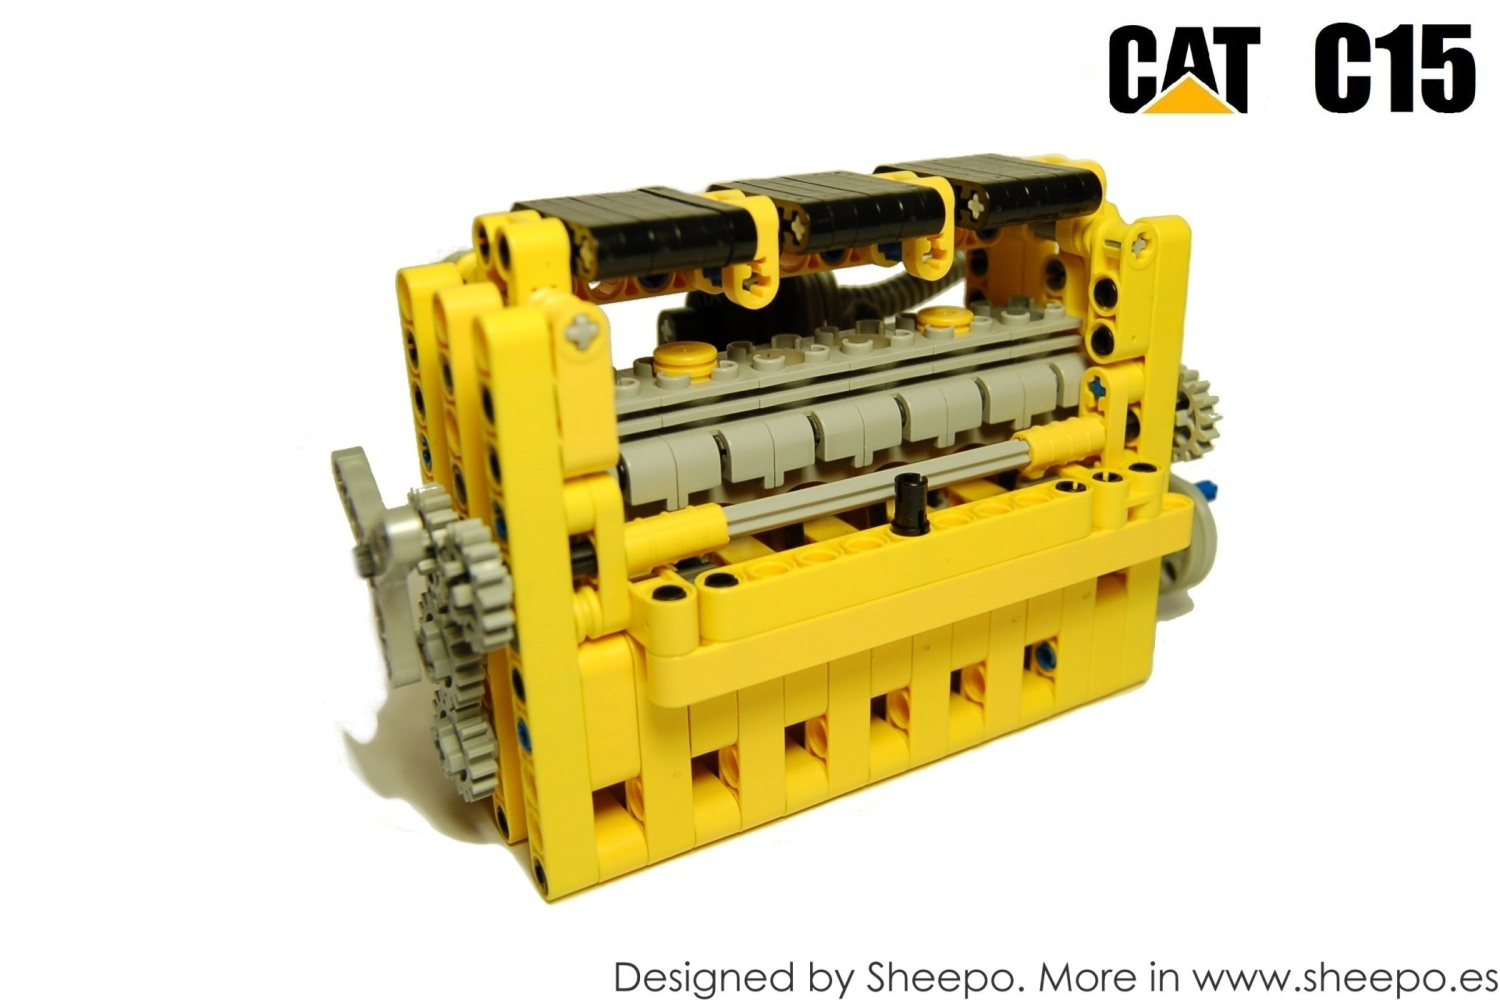 C15 Caterpillar Engine Problems http://besharatnews.ir/besharat2/cat-c15-engine